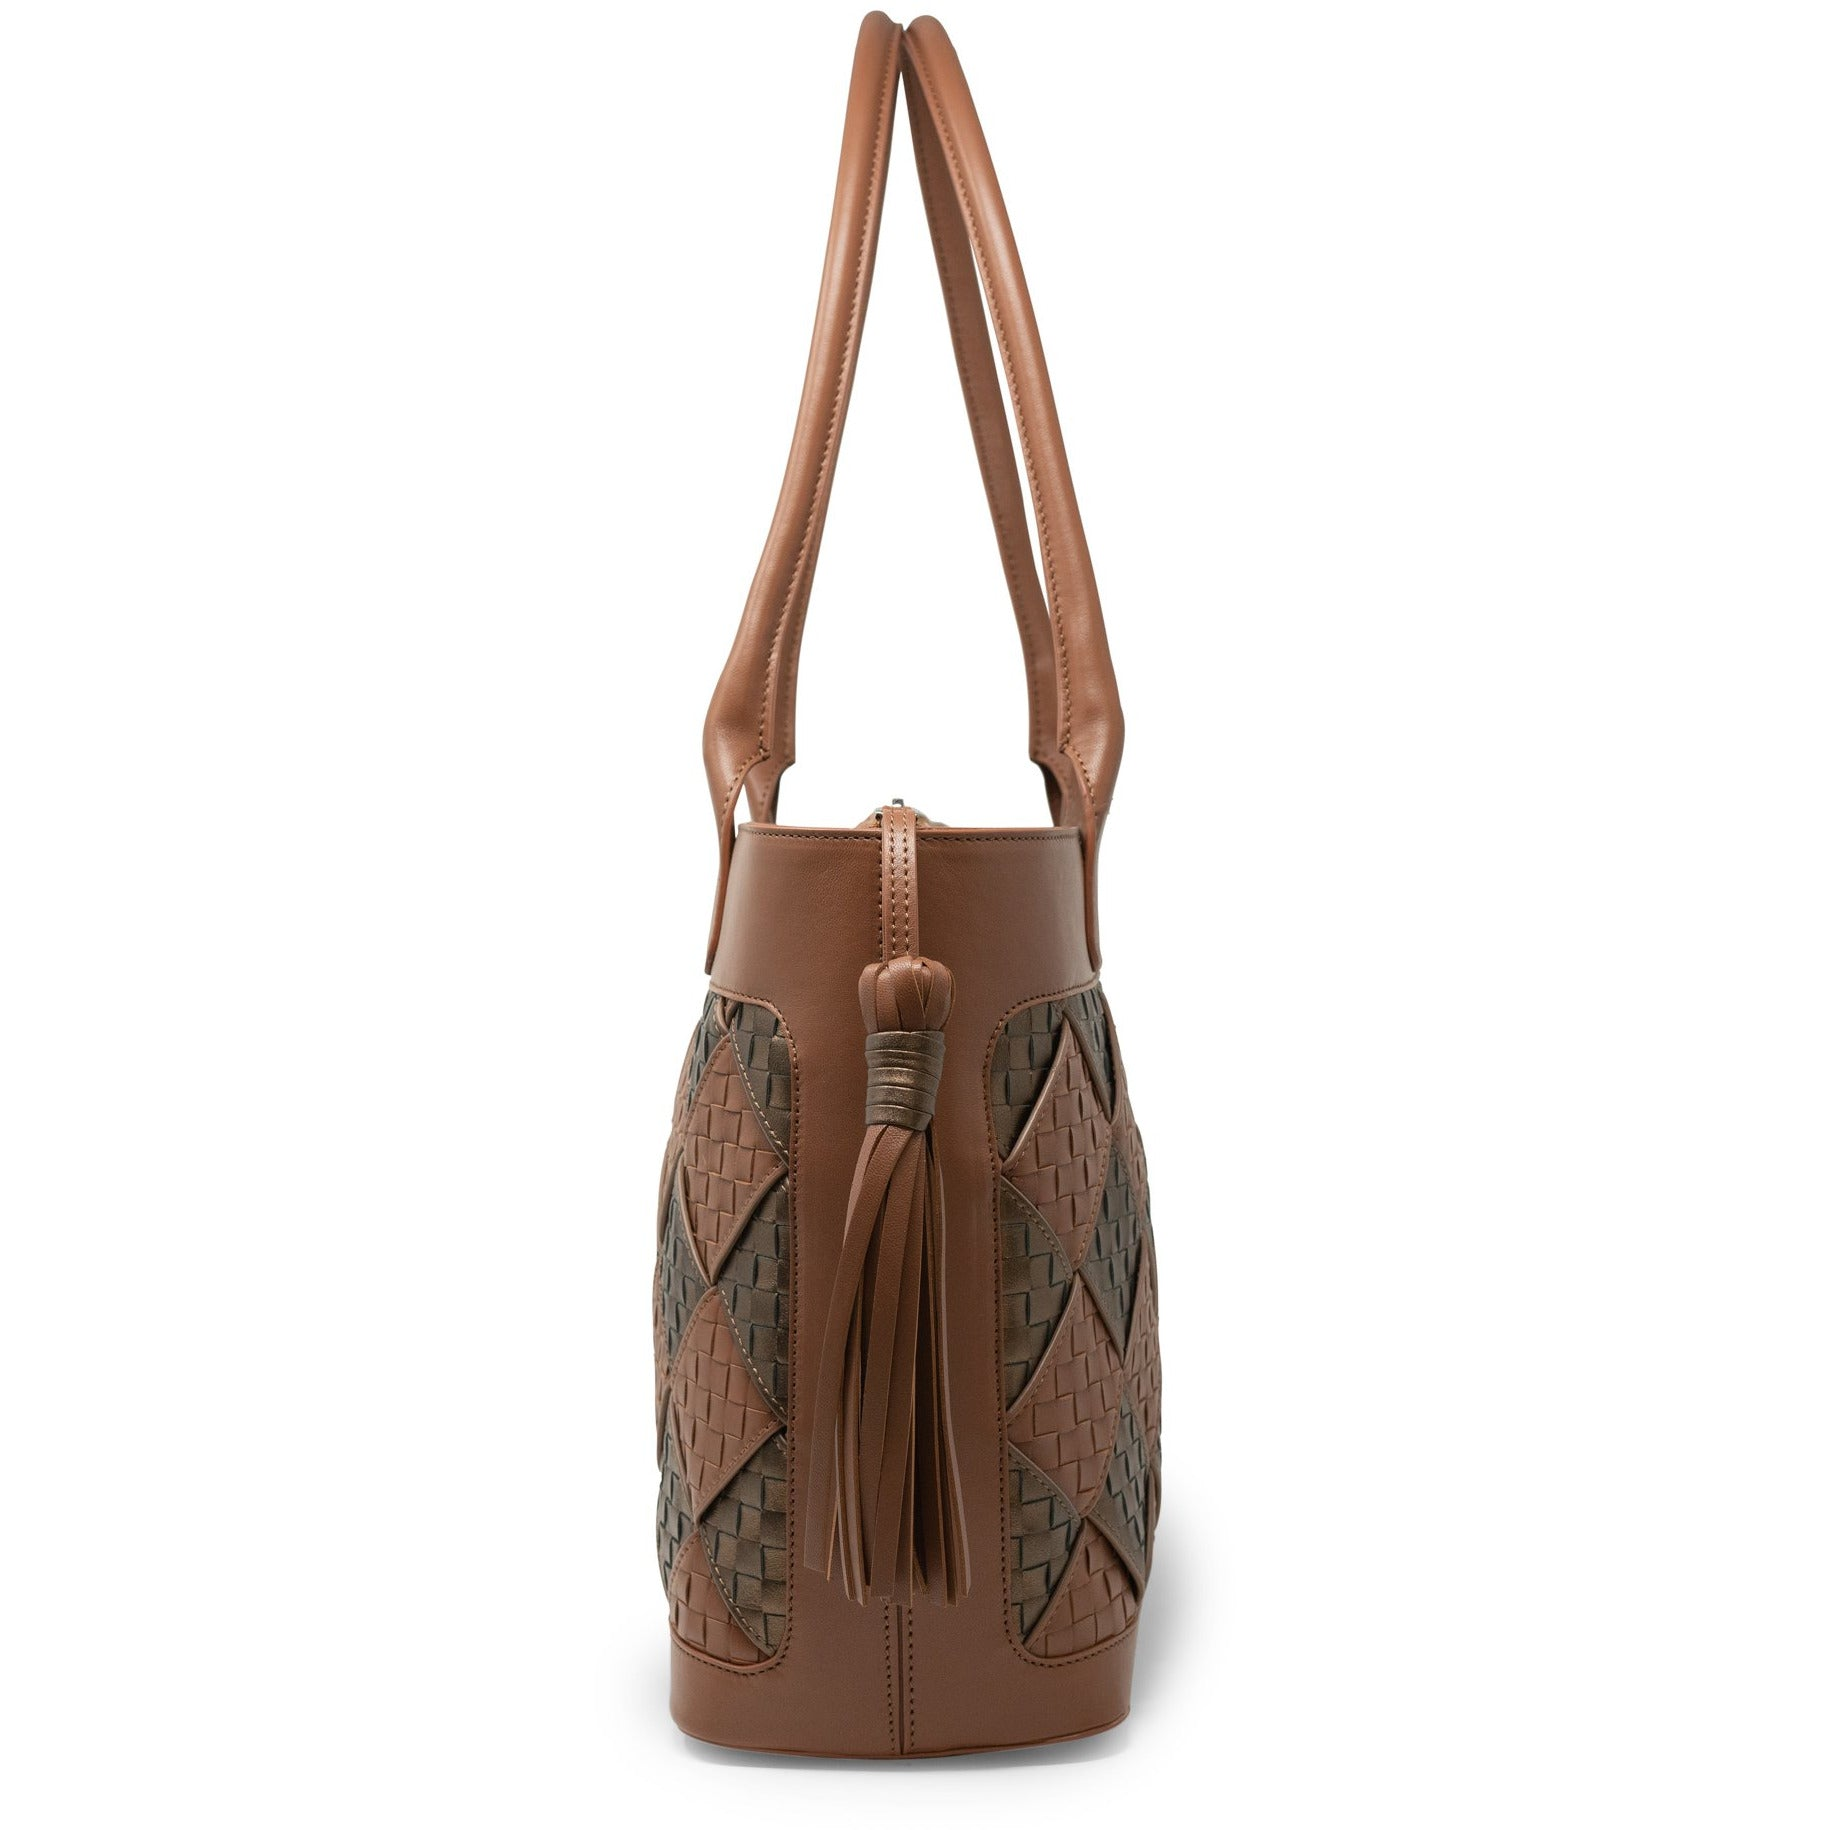 JT317 5570 33 Women Leather Intrecciato Bold Tote Bag - Jennifer Tattanelli